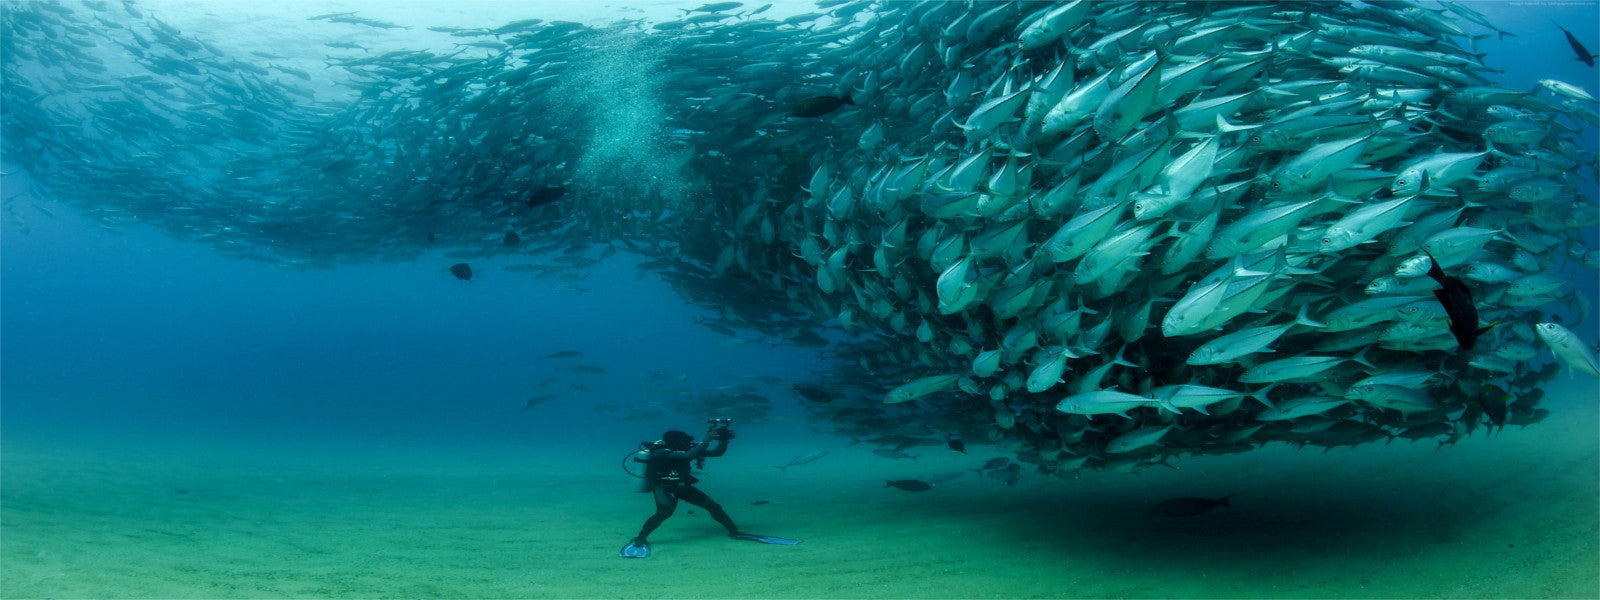 Scuba Diving - DiversDistrict.com